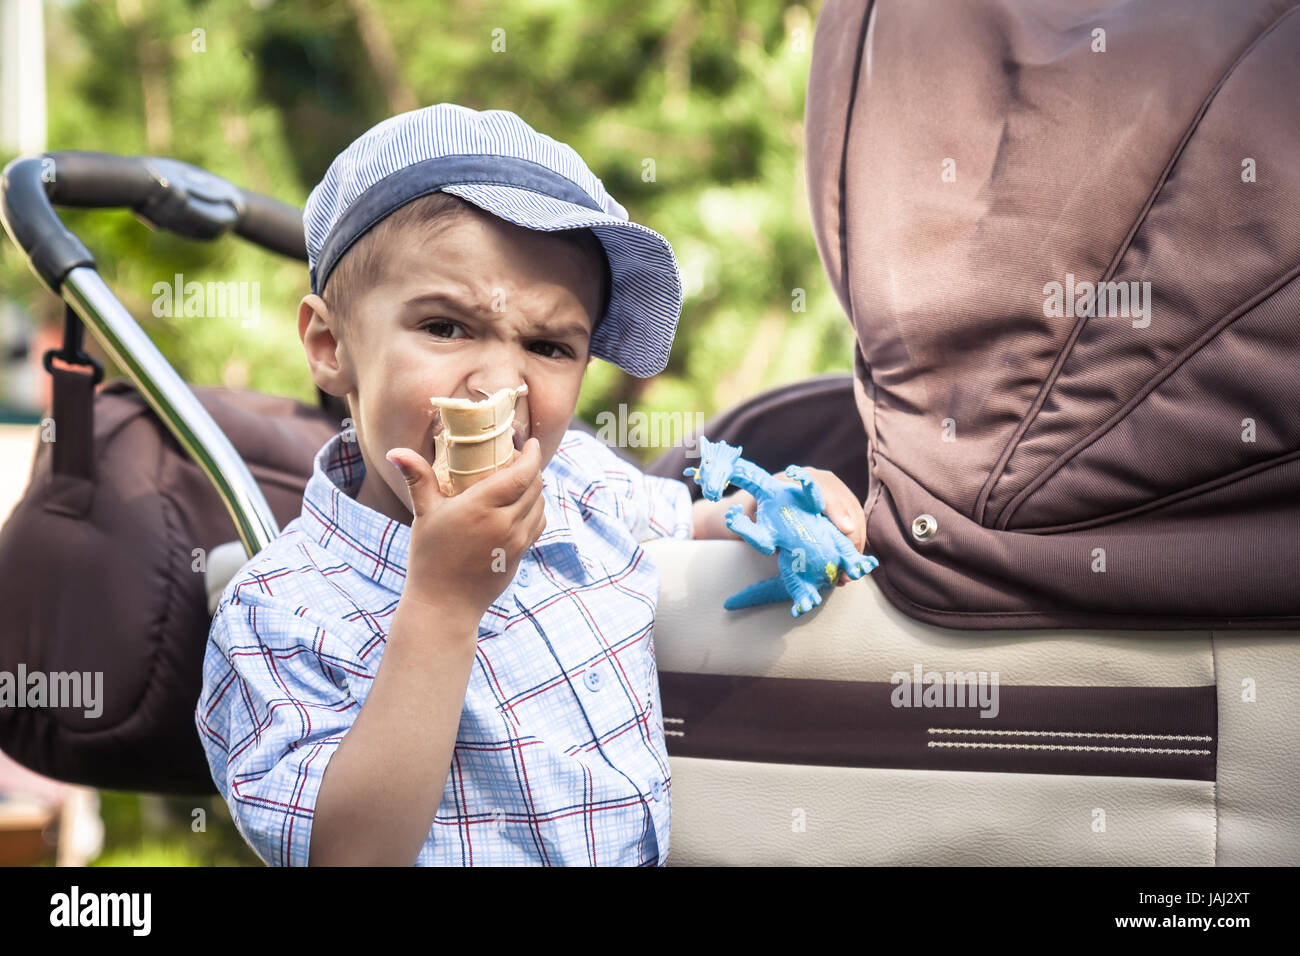 Big brother watching and guarding his junior brother in perambulator while walking in summer park and eating ice - Stock Image